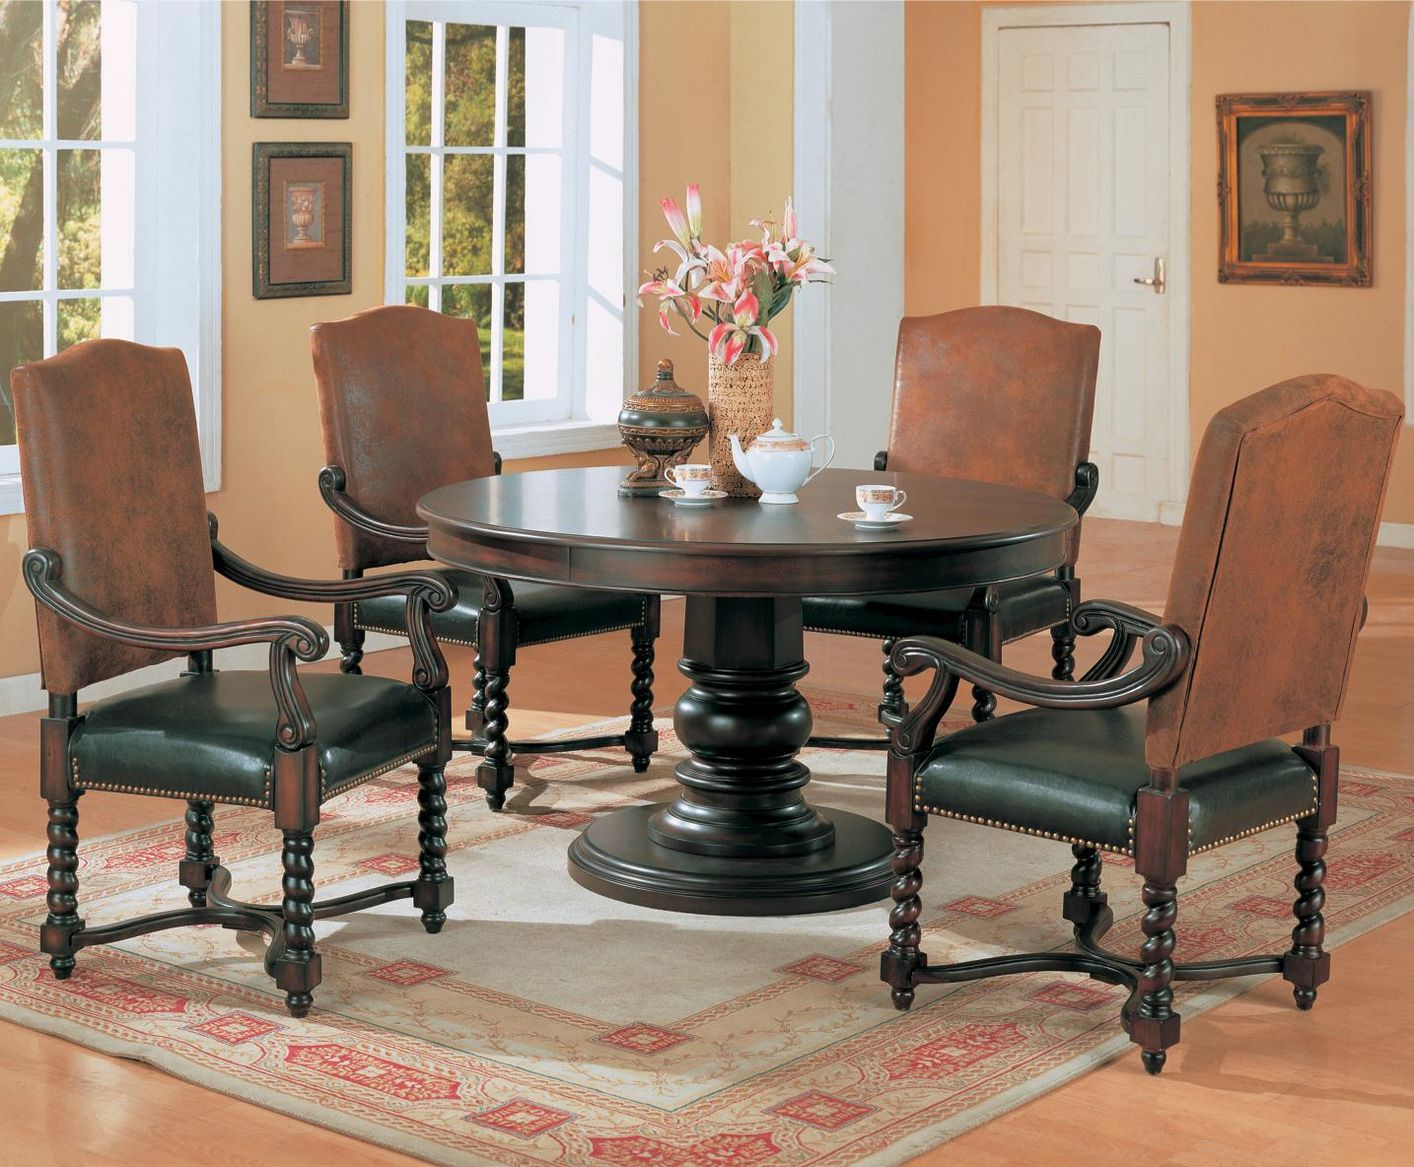 Jofran prospect creek wood counter height dining table in for Dark hardwood dining table